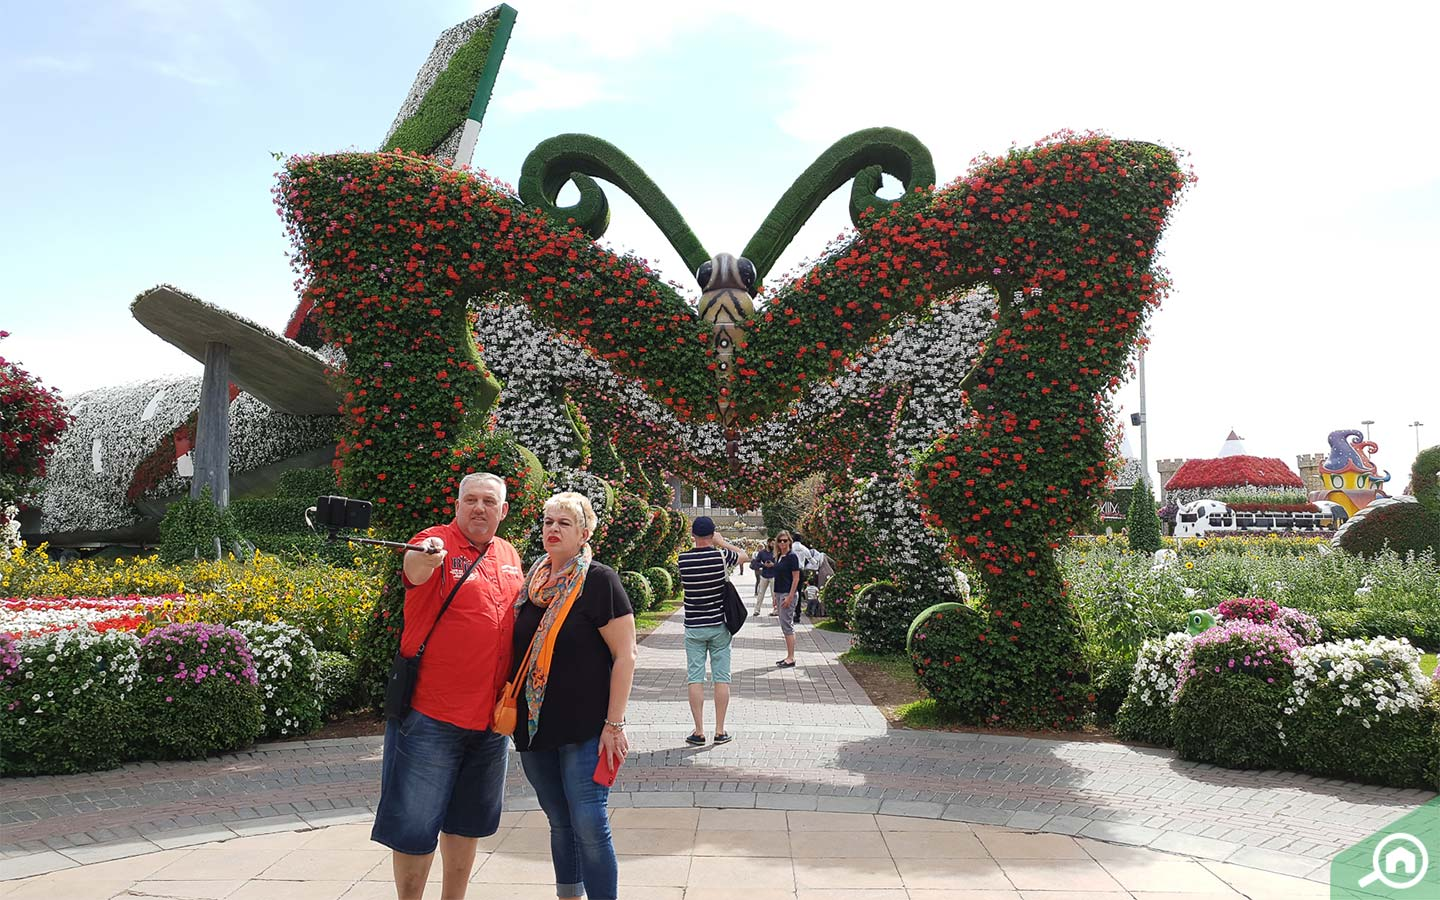 The Butterfly Passage at the Dubai Miracle Garden